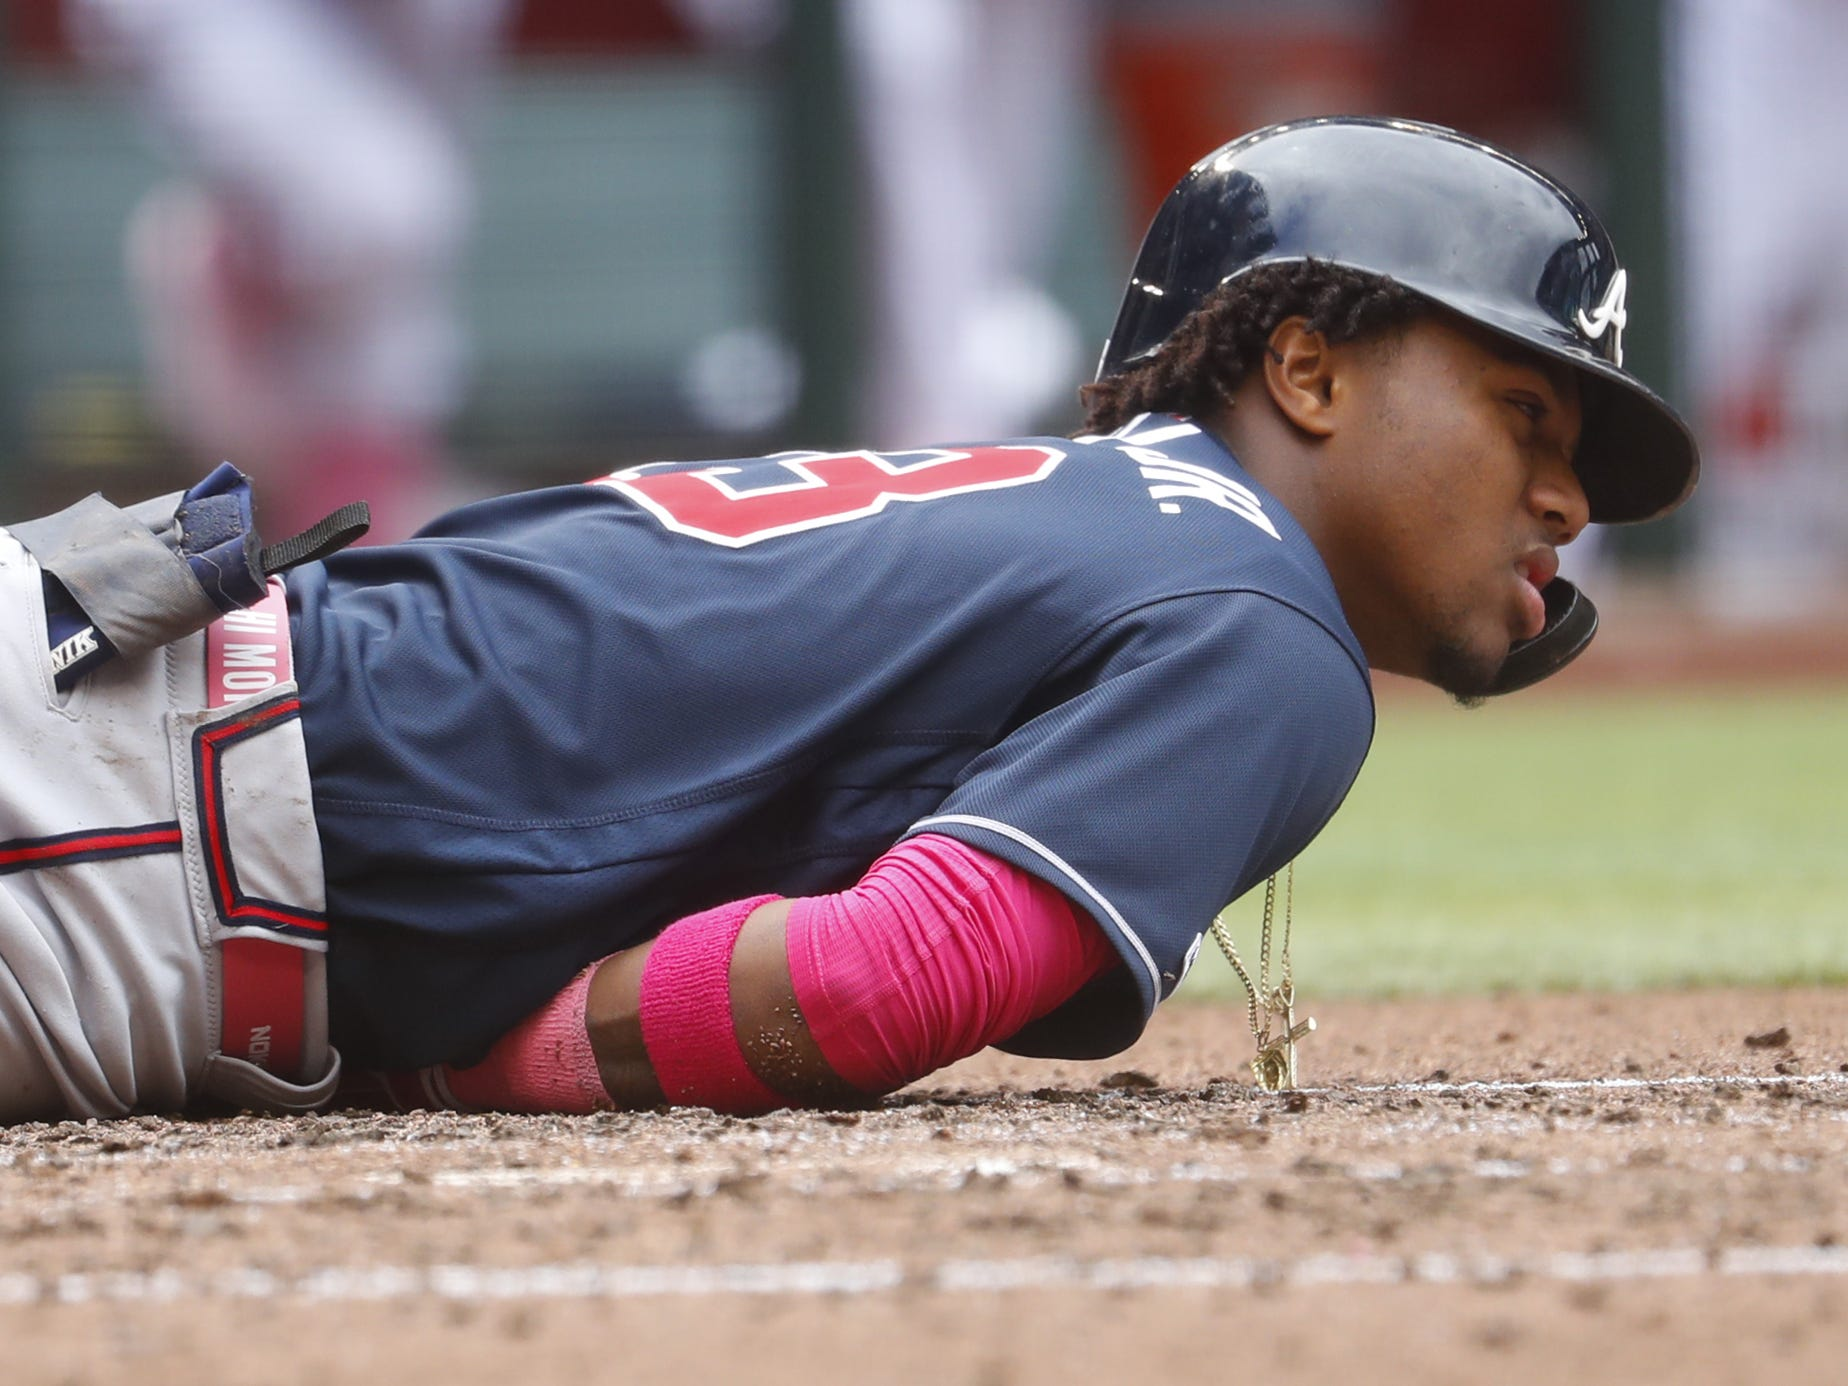 Braves' Ronald Acuna (13) lays on the ground after being hit by a pitch against the Diamondbacks at Chase Field in Phoenix, Ariz. on May 12, 2019.